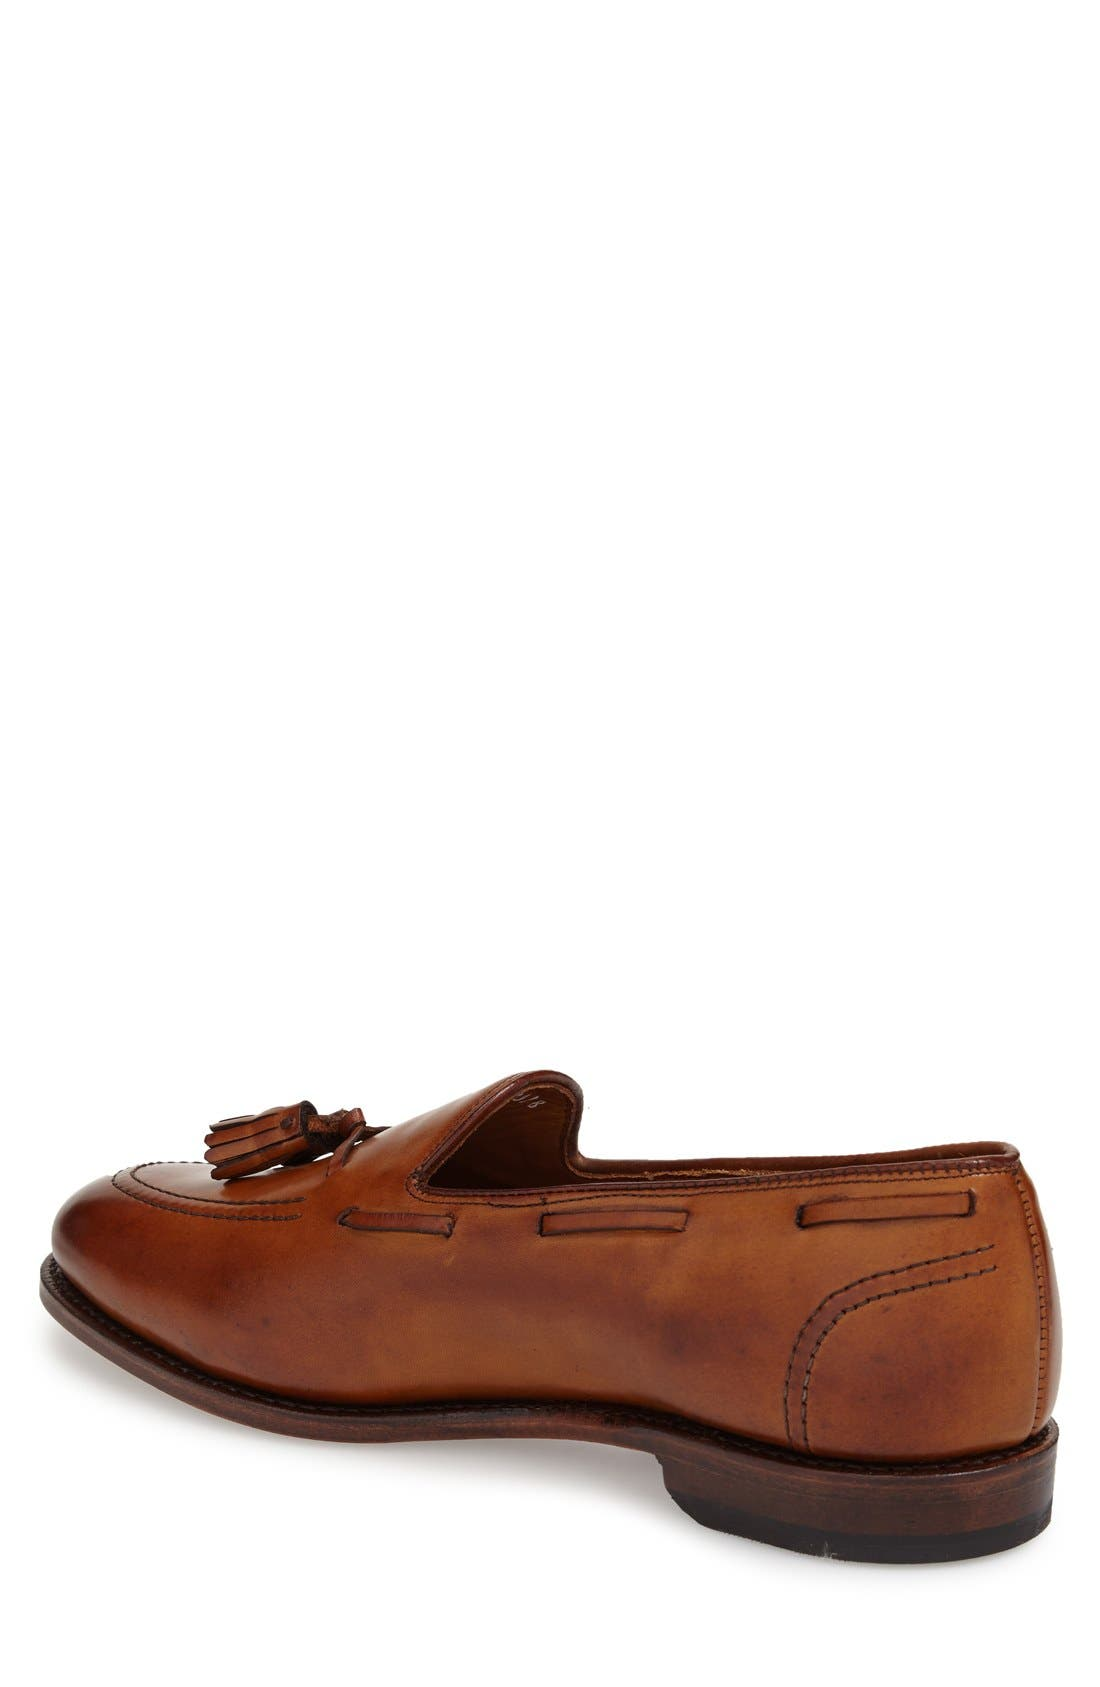 ALLEN EDMONDS, 'Acheson' Tassel Loafer, Alternate thumbnail 3, color, WALNUT